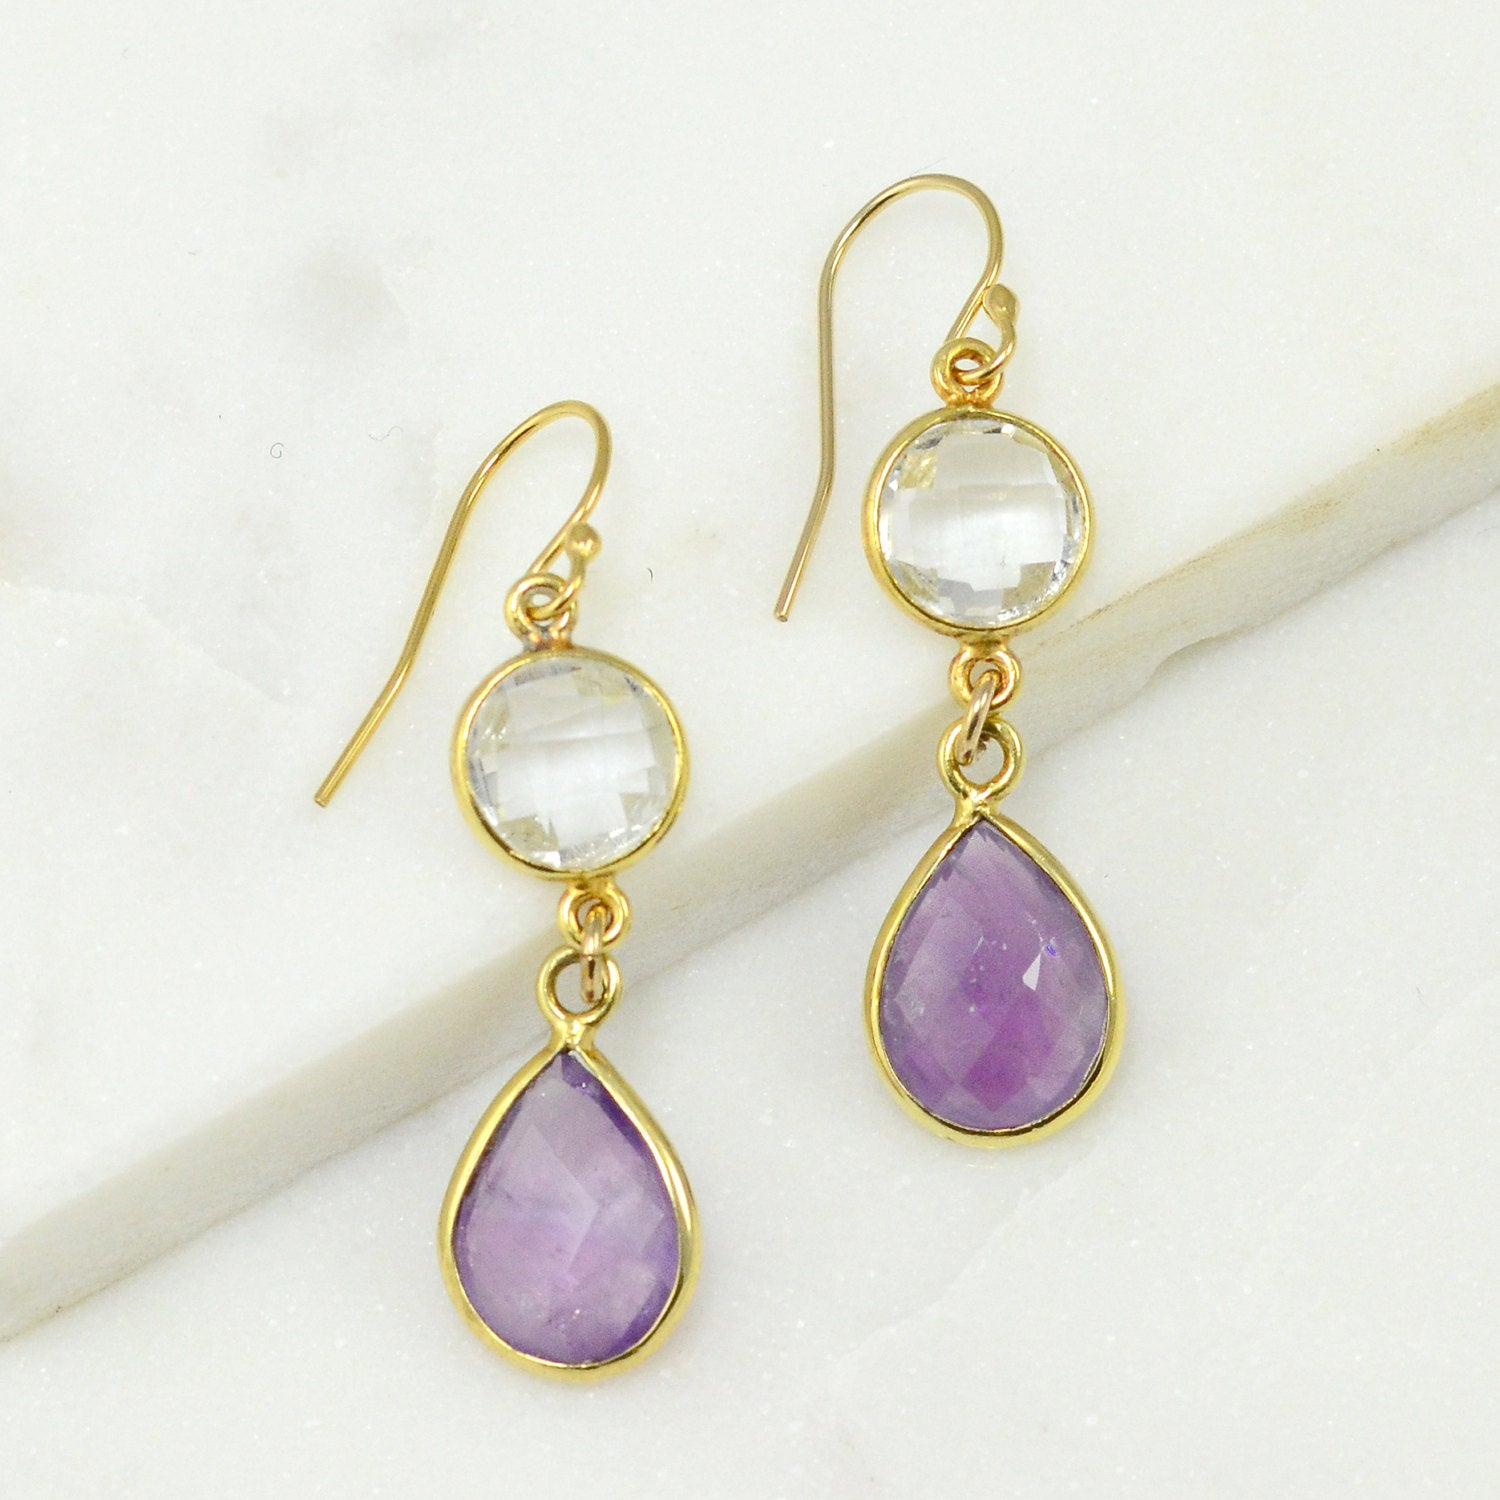 Purple Amethyst Earring, Clear Quartz Gold Earring, Tear Drop Earring, Two tier earring, Bezel Drop Earring, Bridesmaid Earring, Silver Gift